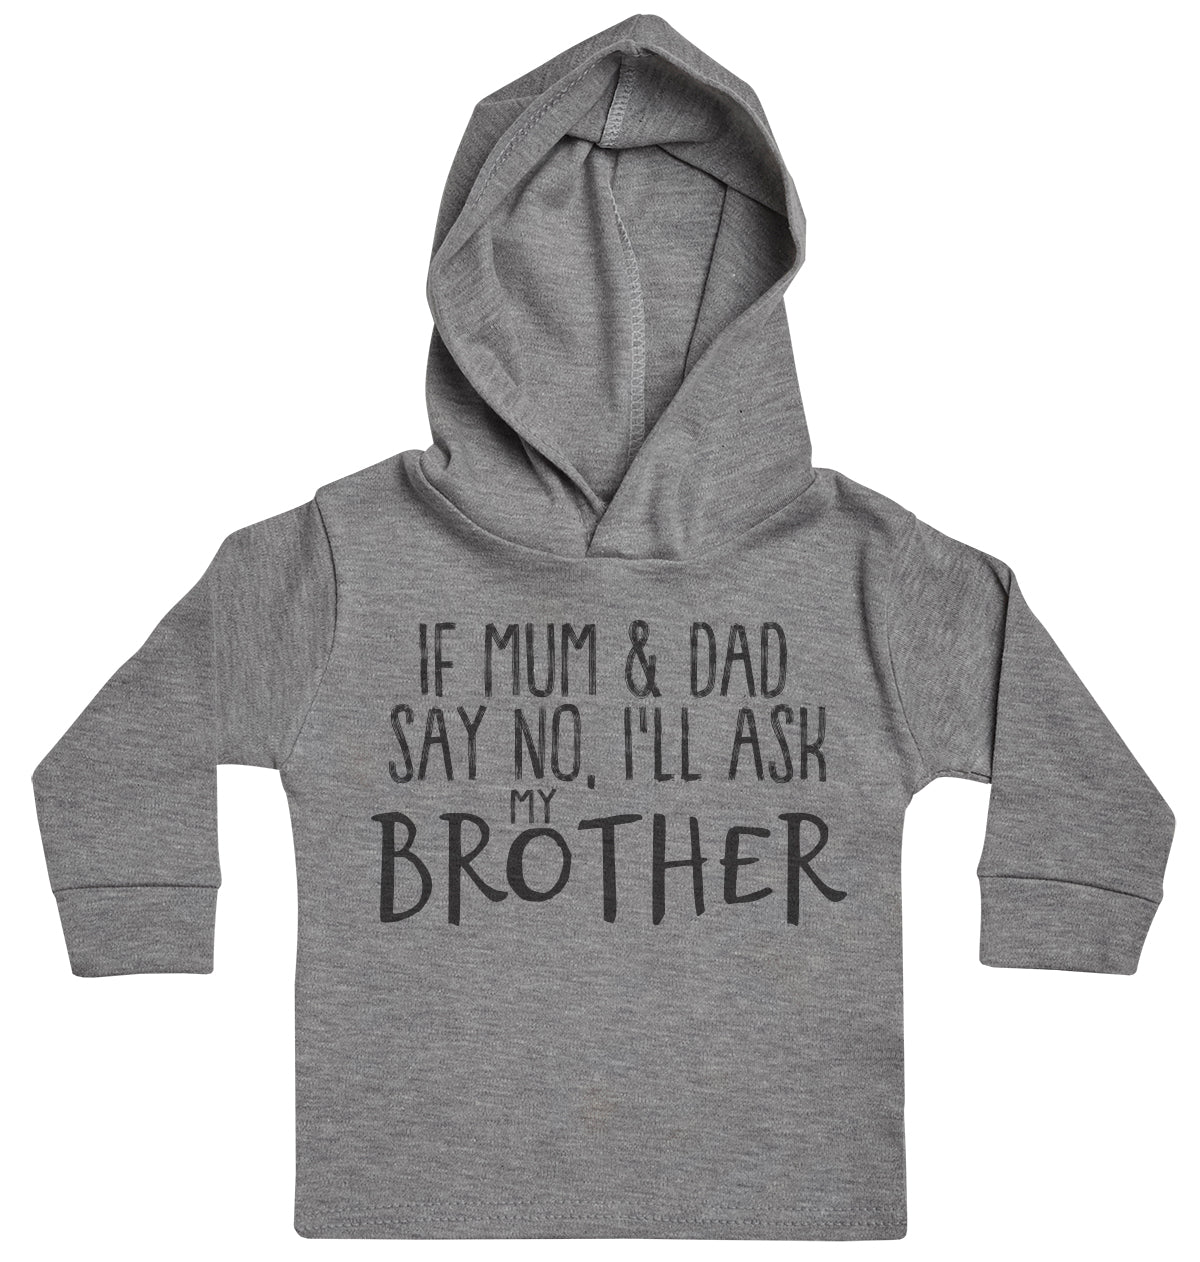 If Mum & Dad Say No, I'll Ask My Brother Baby Hoody